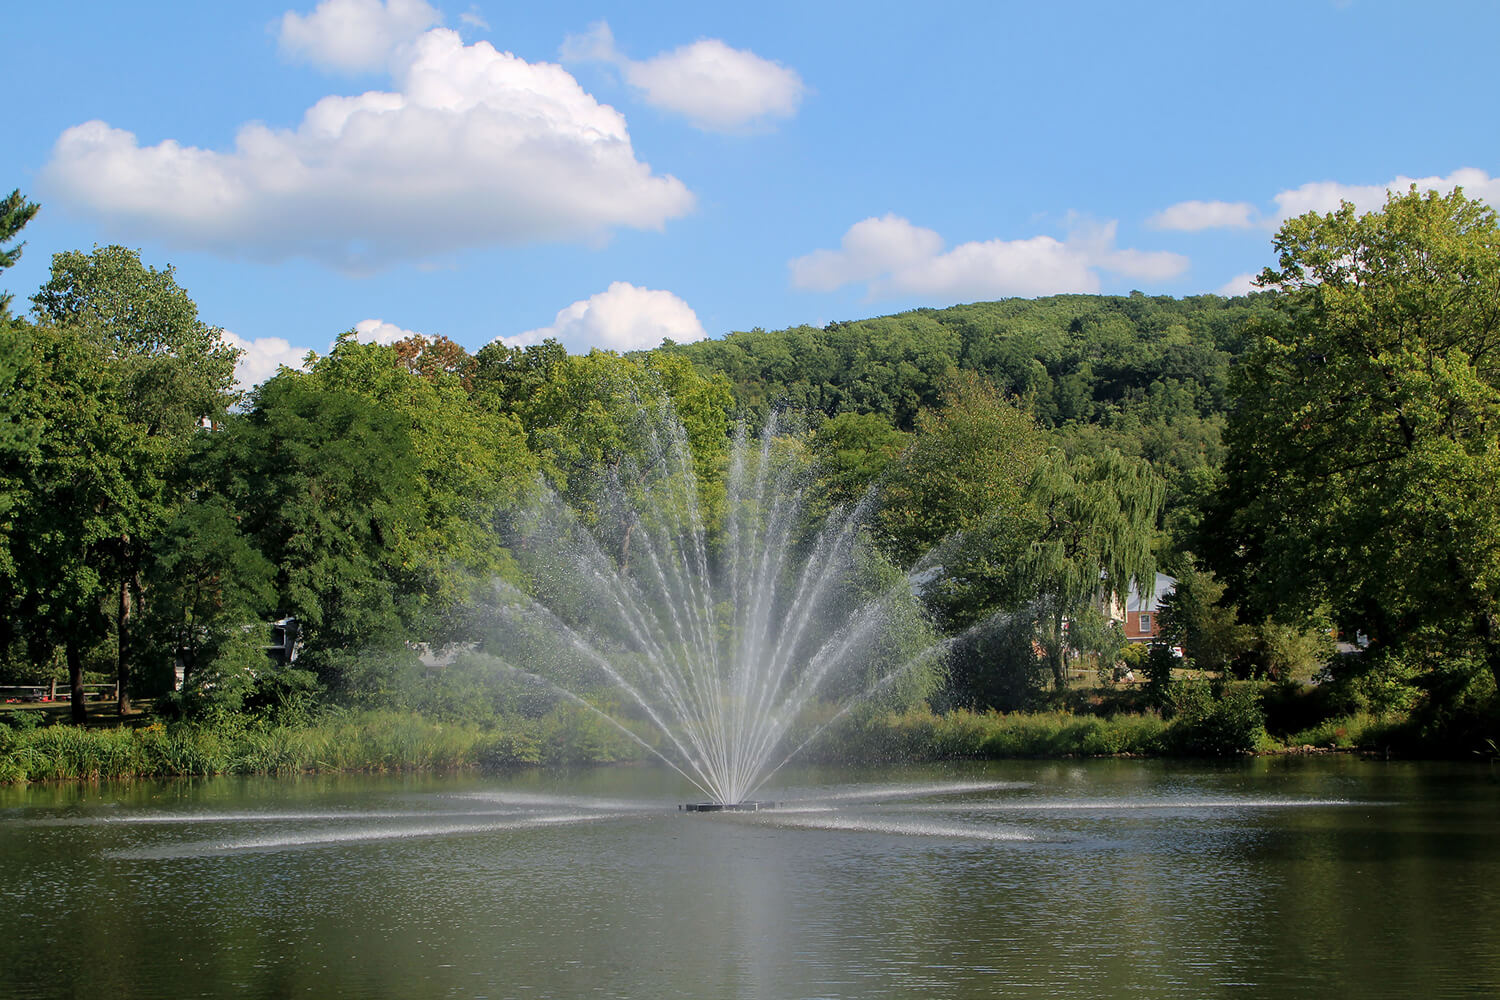 One of Otterbine's Equinox Aerating Fountains in a residential area